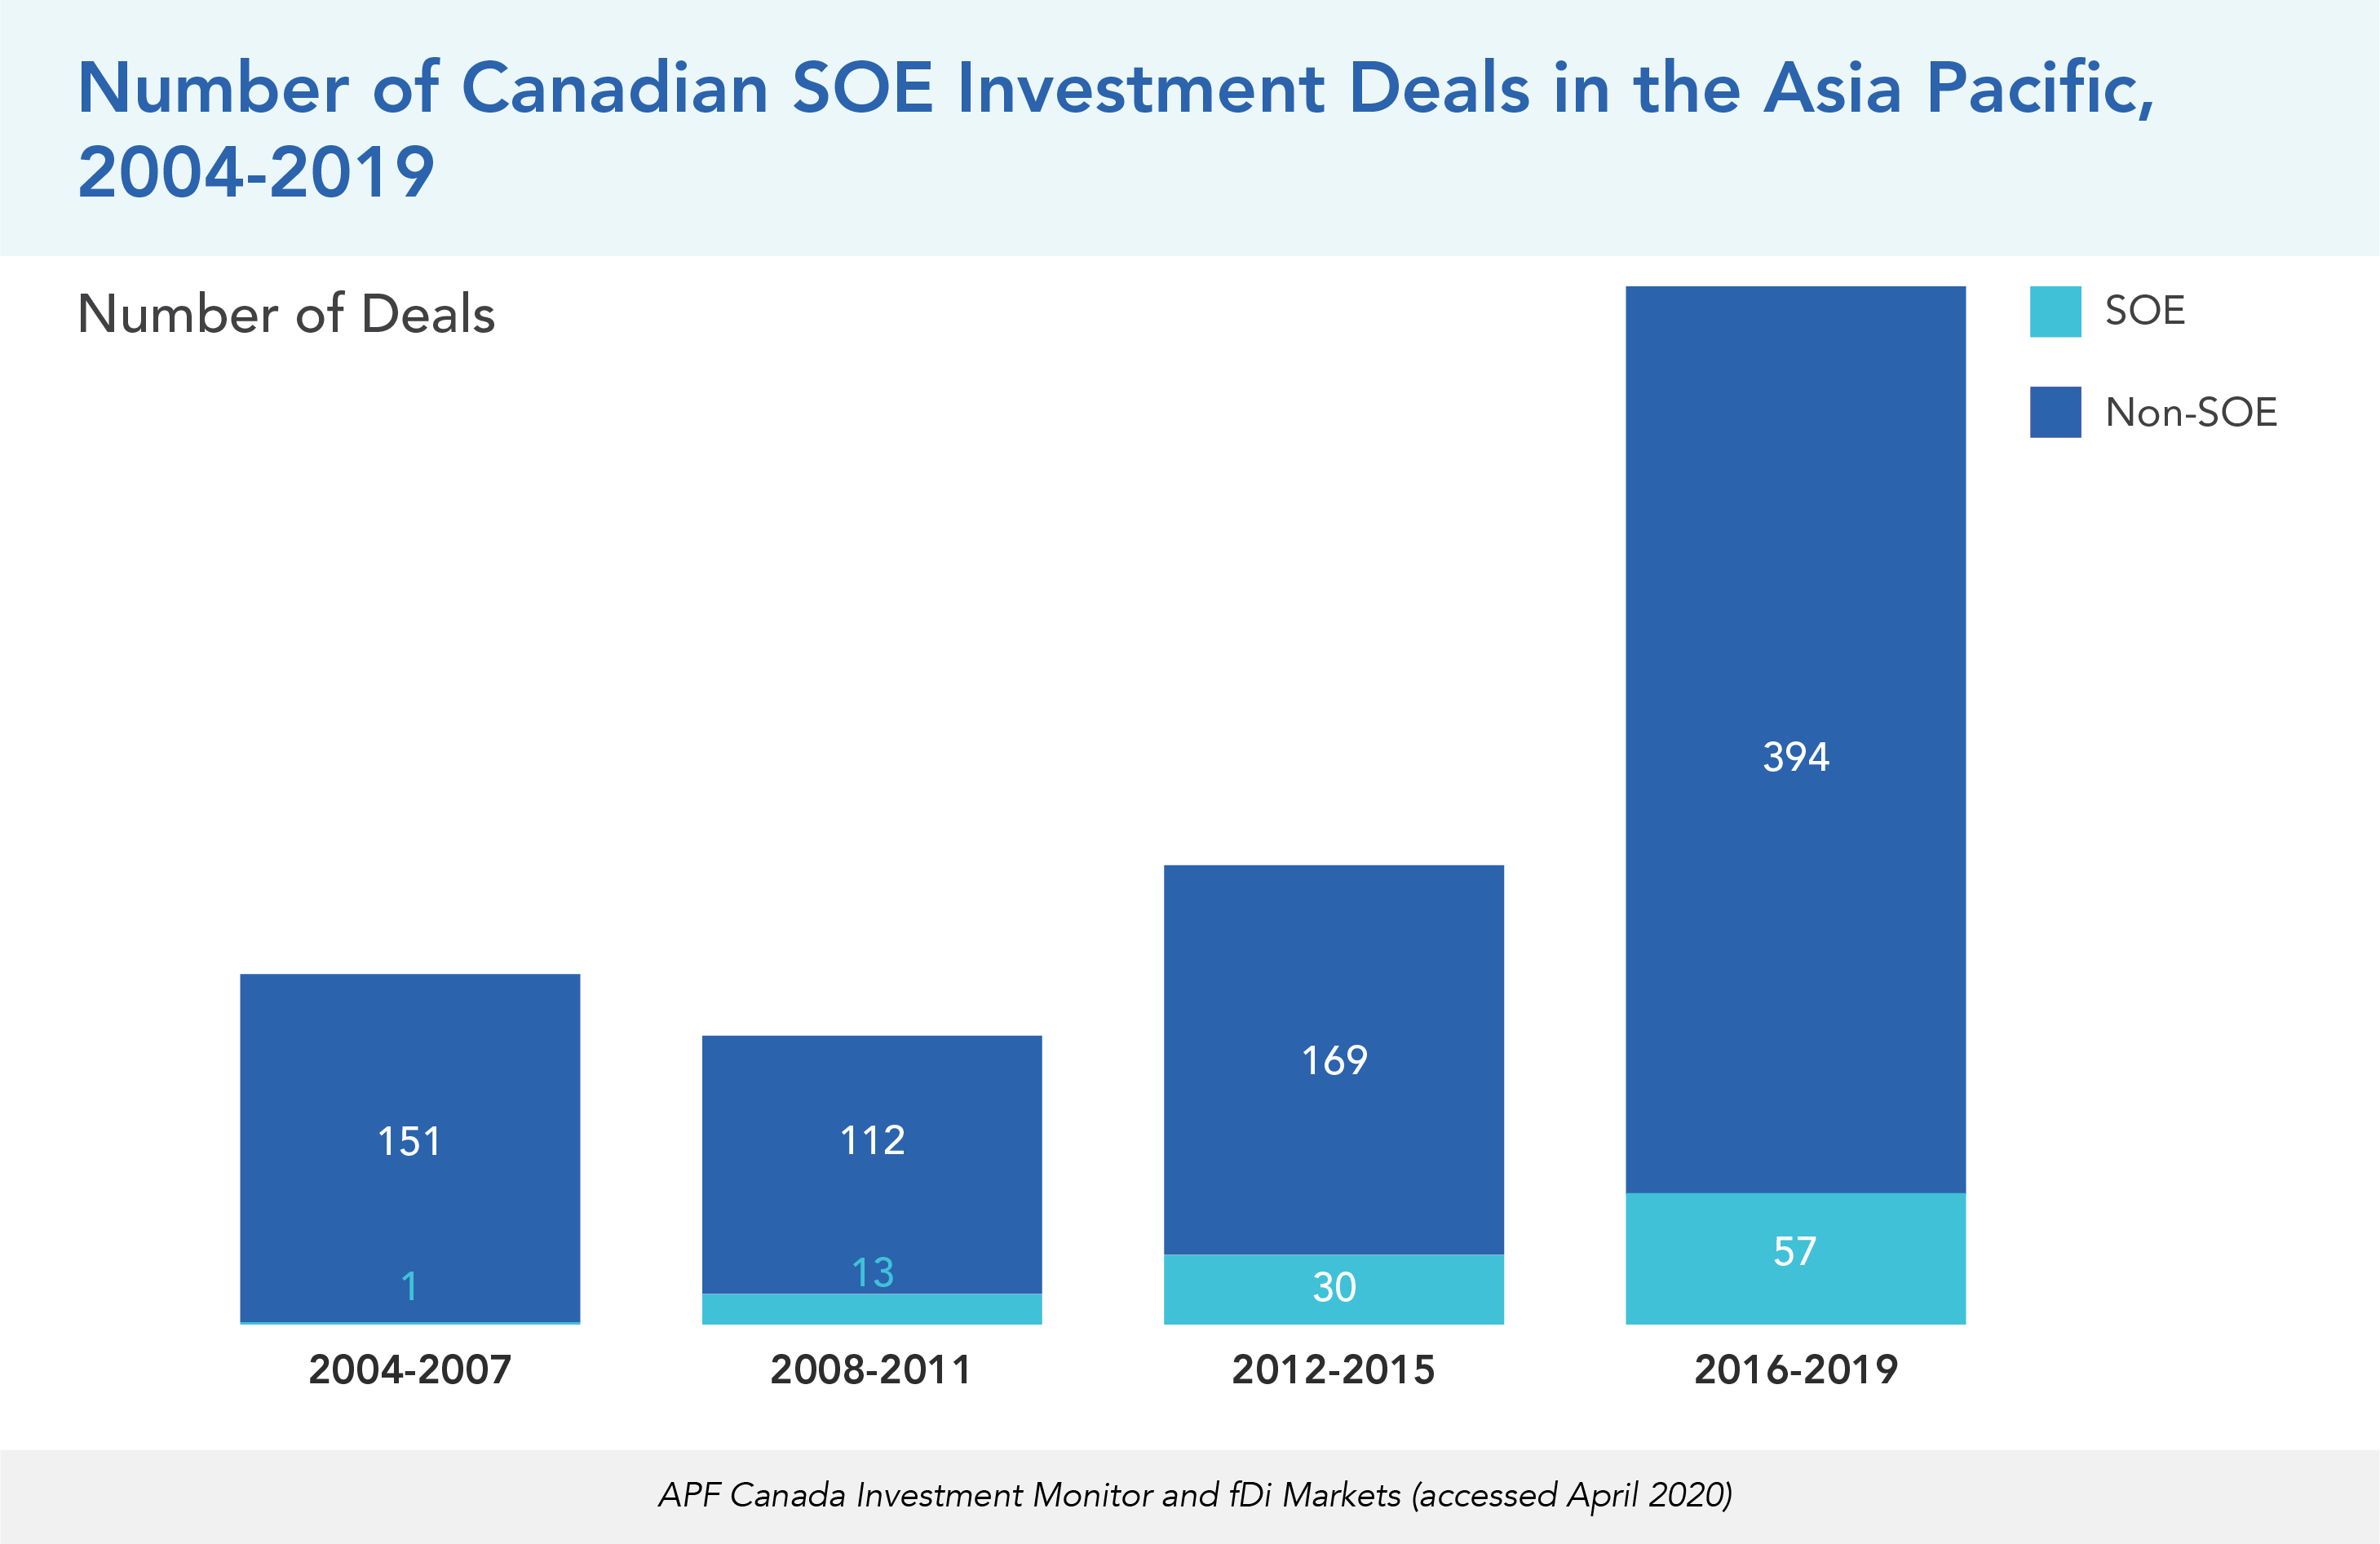 Number of Canadian SOE Investment Deals in the Asia Pacific, 2004-2019